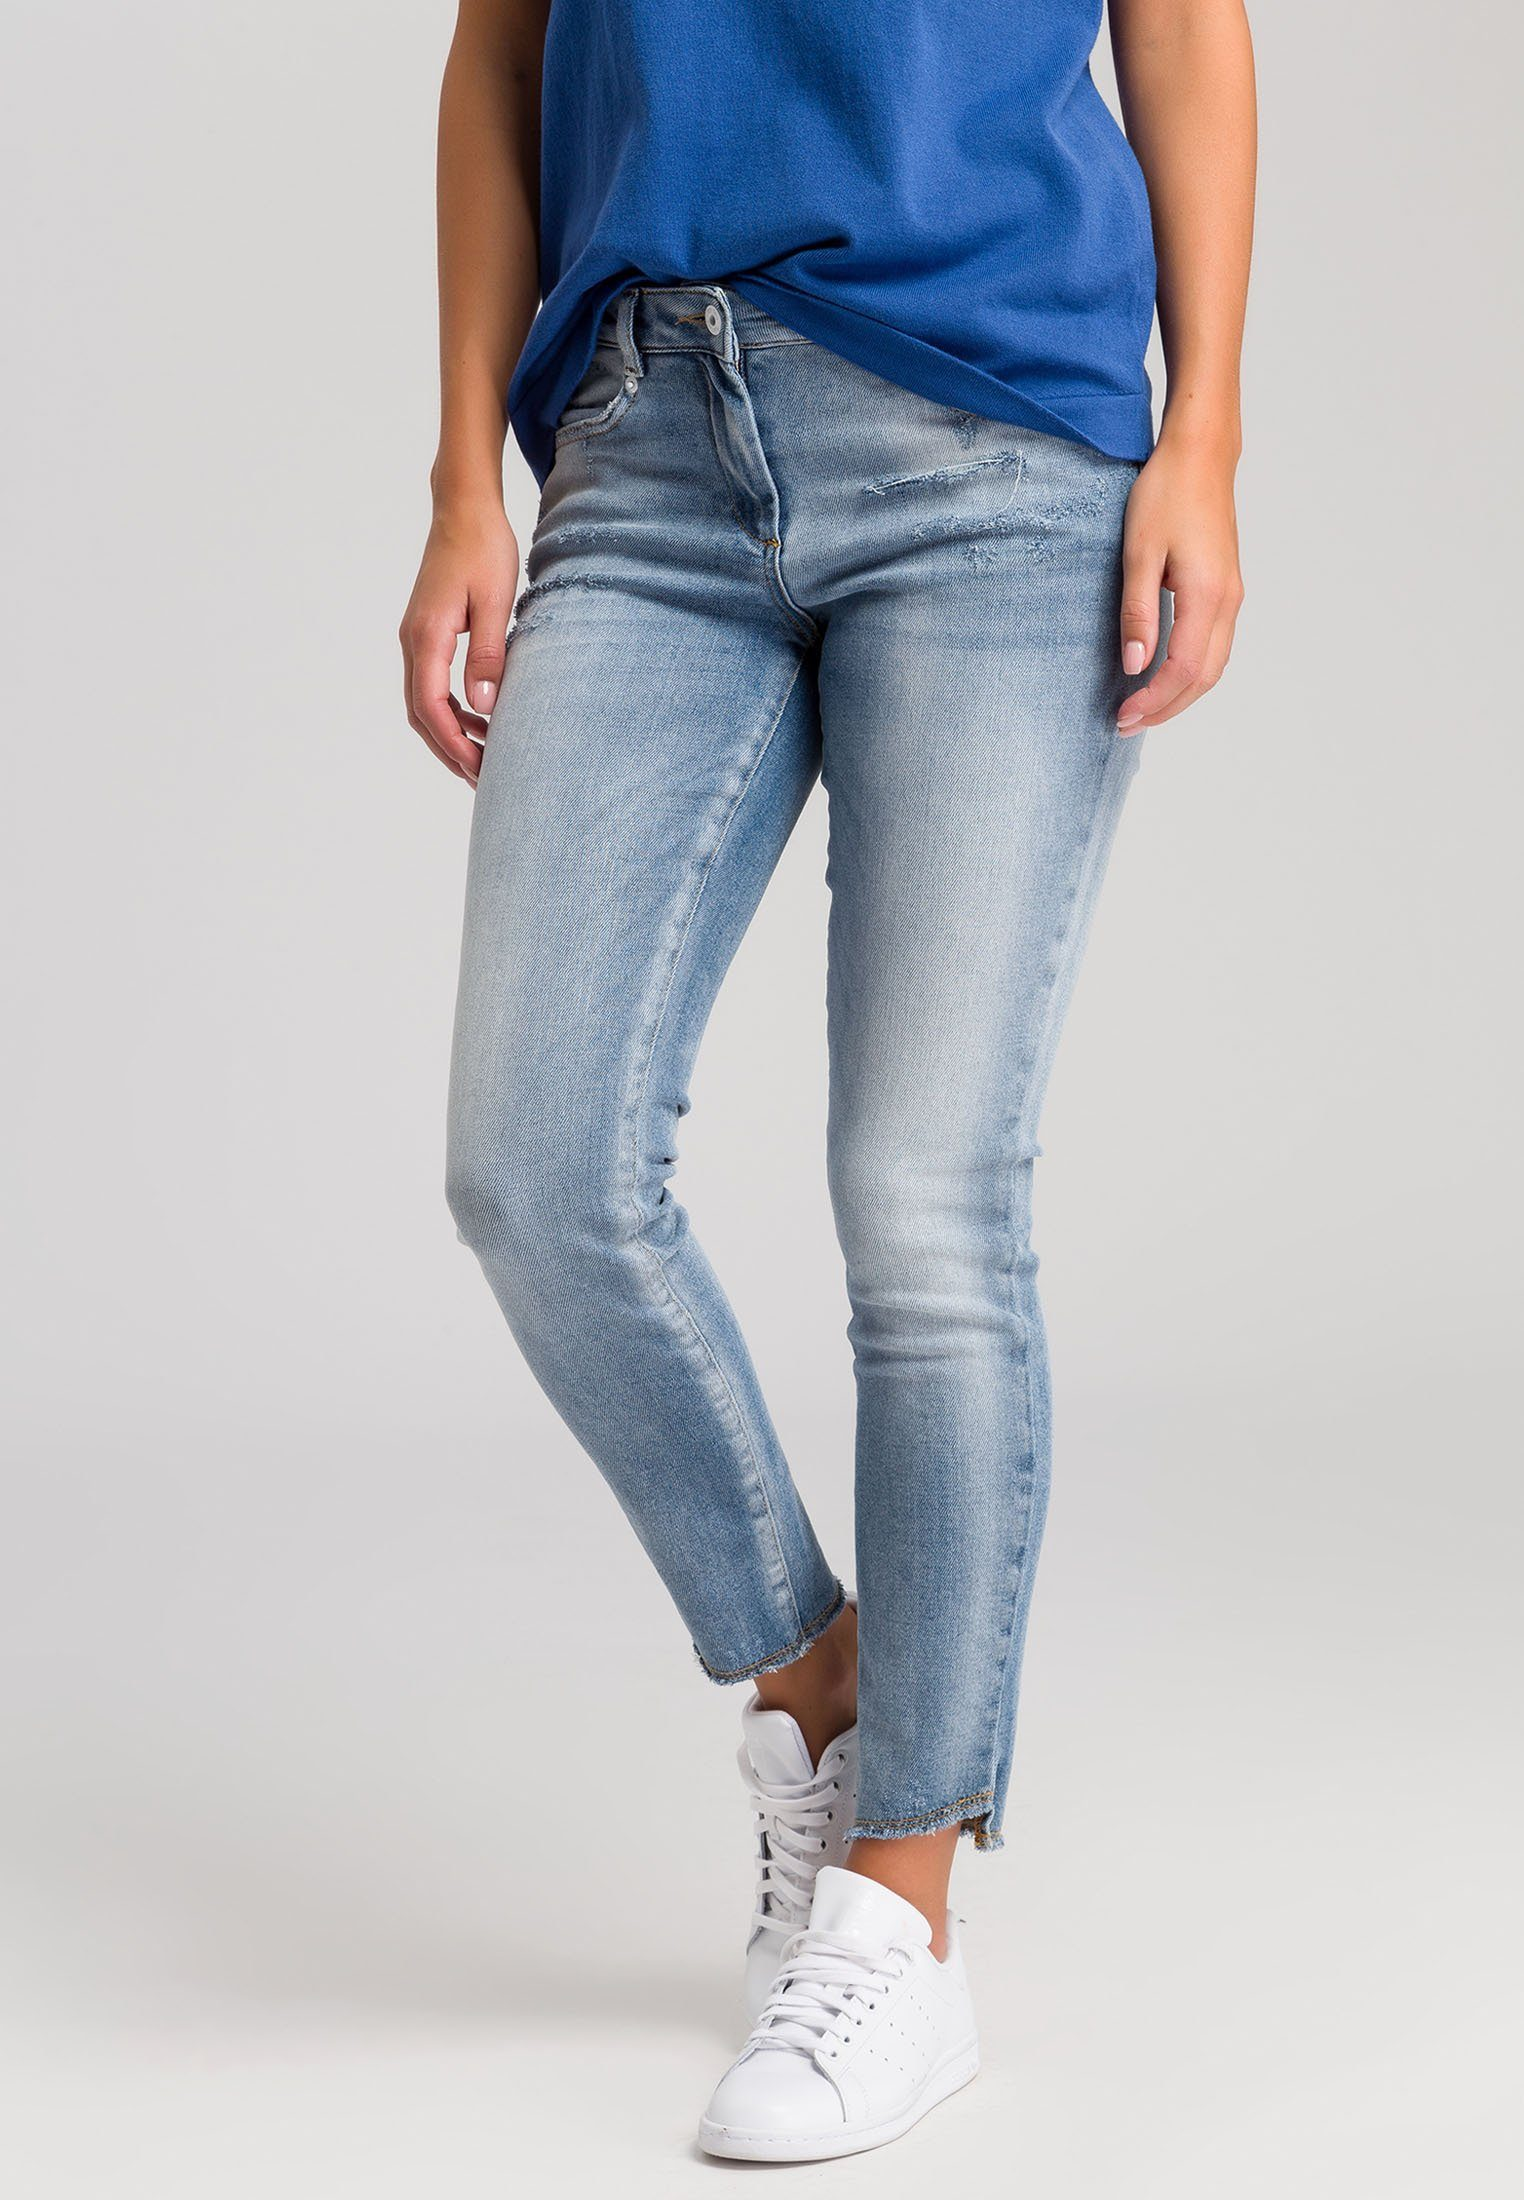 Casual-Look mit 2-Wege-Zippe Gr bleached BEST CONNECTIONS 38 Jeansbluse B.C